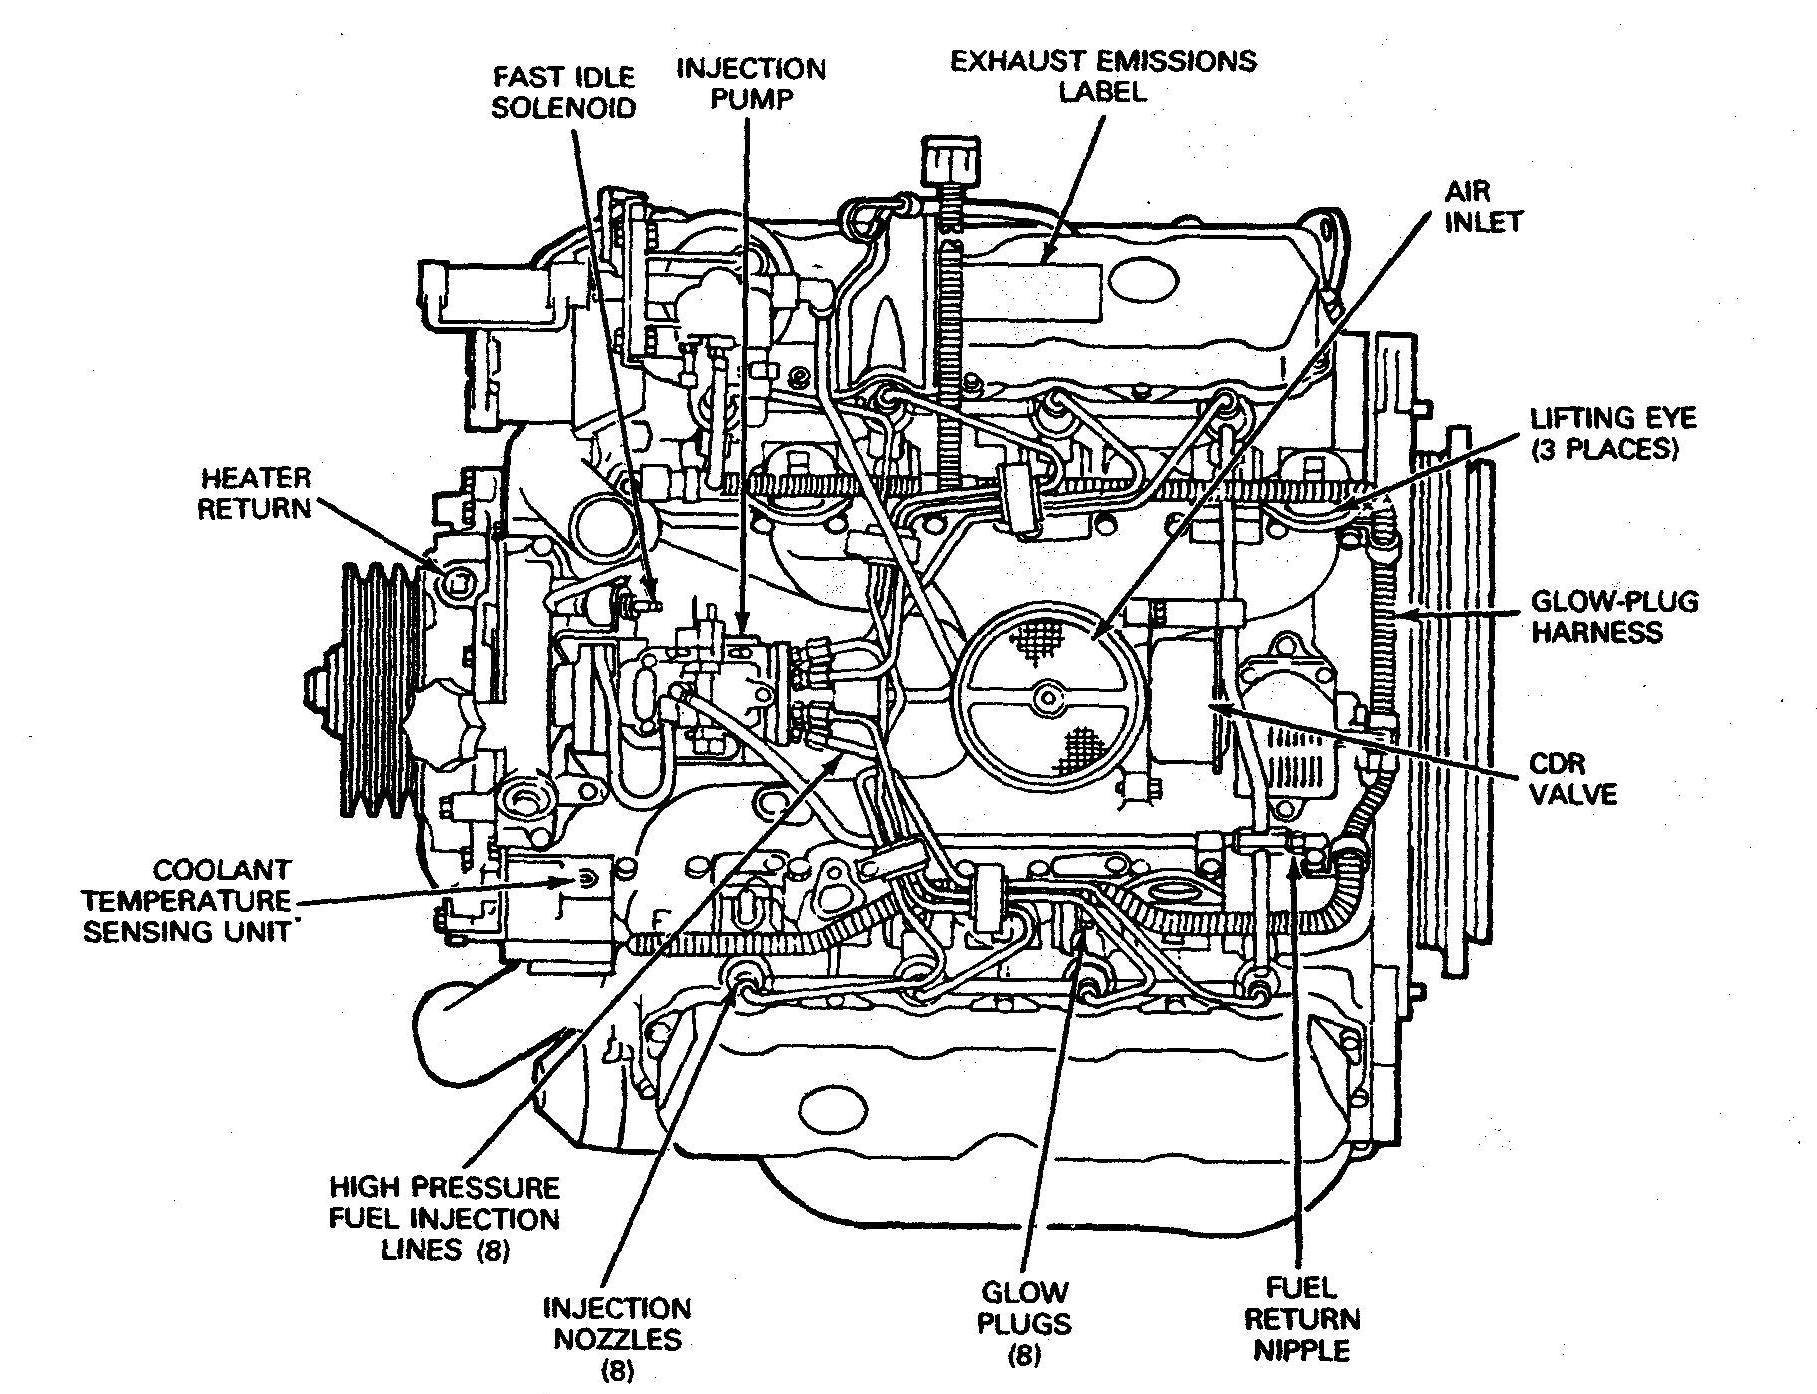 car engine diagram wiring diagram library u2022 rh wiringboxa today simple car engine diagram basic car engine parts diagram